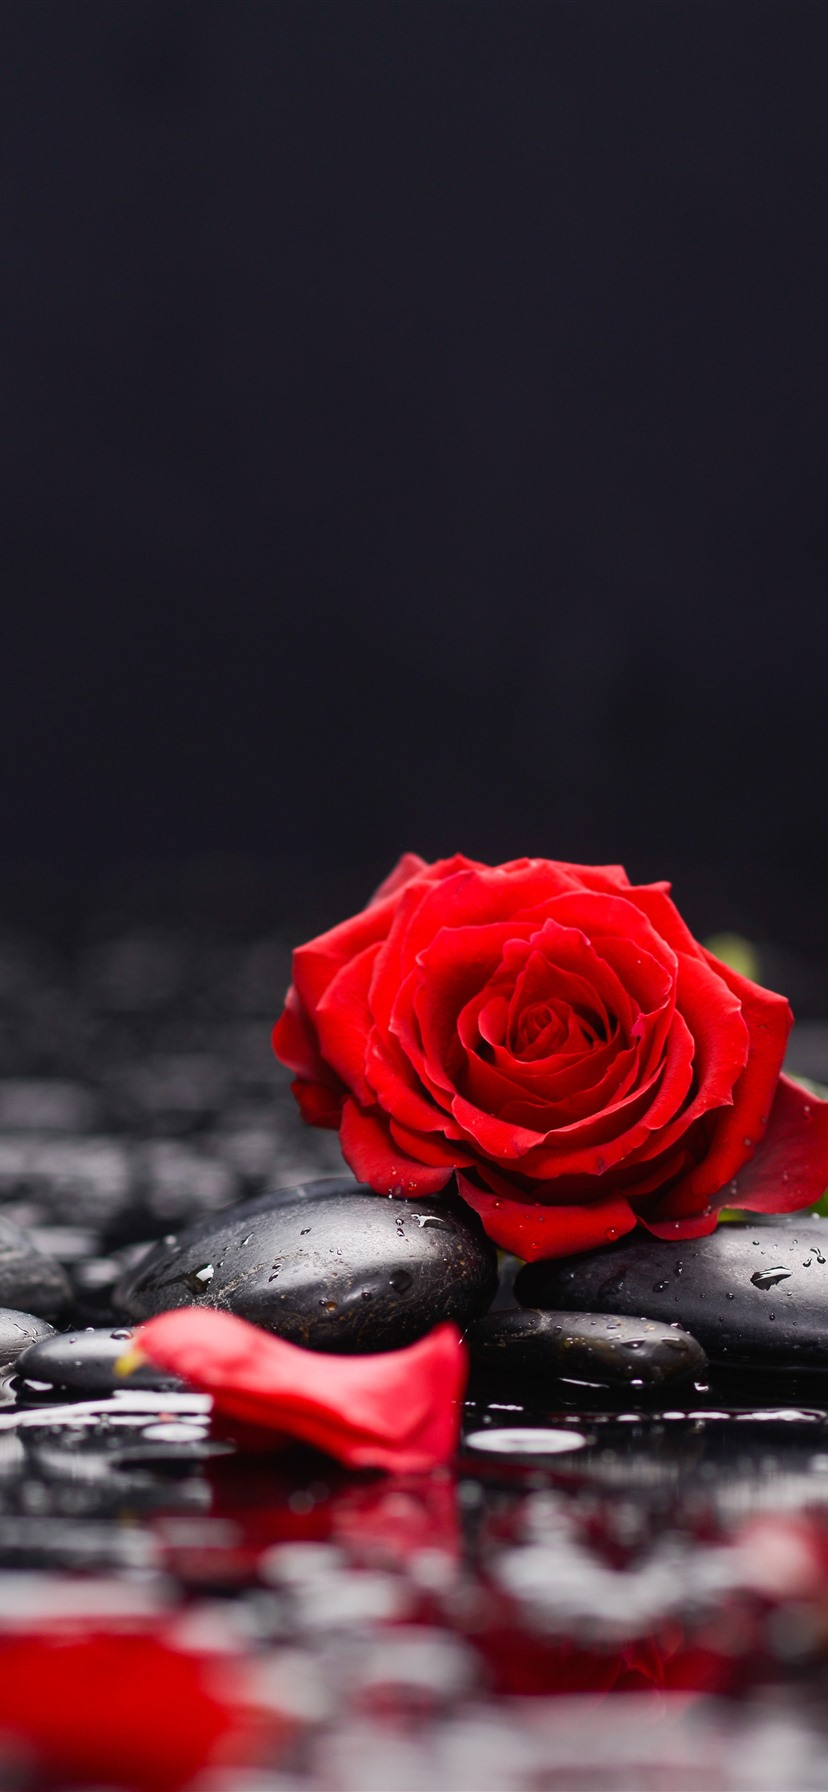 Red Roses And Petals Stones Water 1242x2688 Iphone 11 Pro Xs Max Wallpaper Background Picture Image